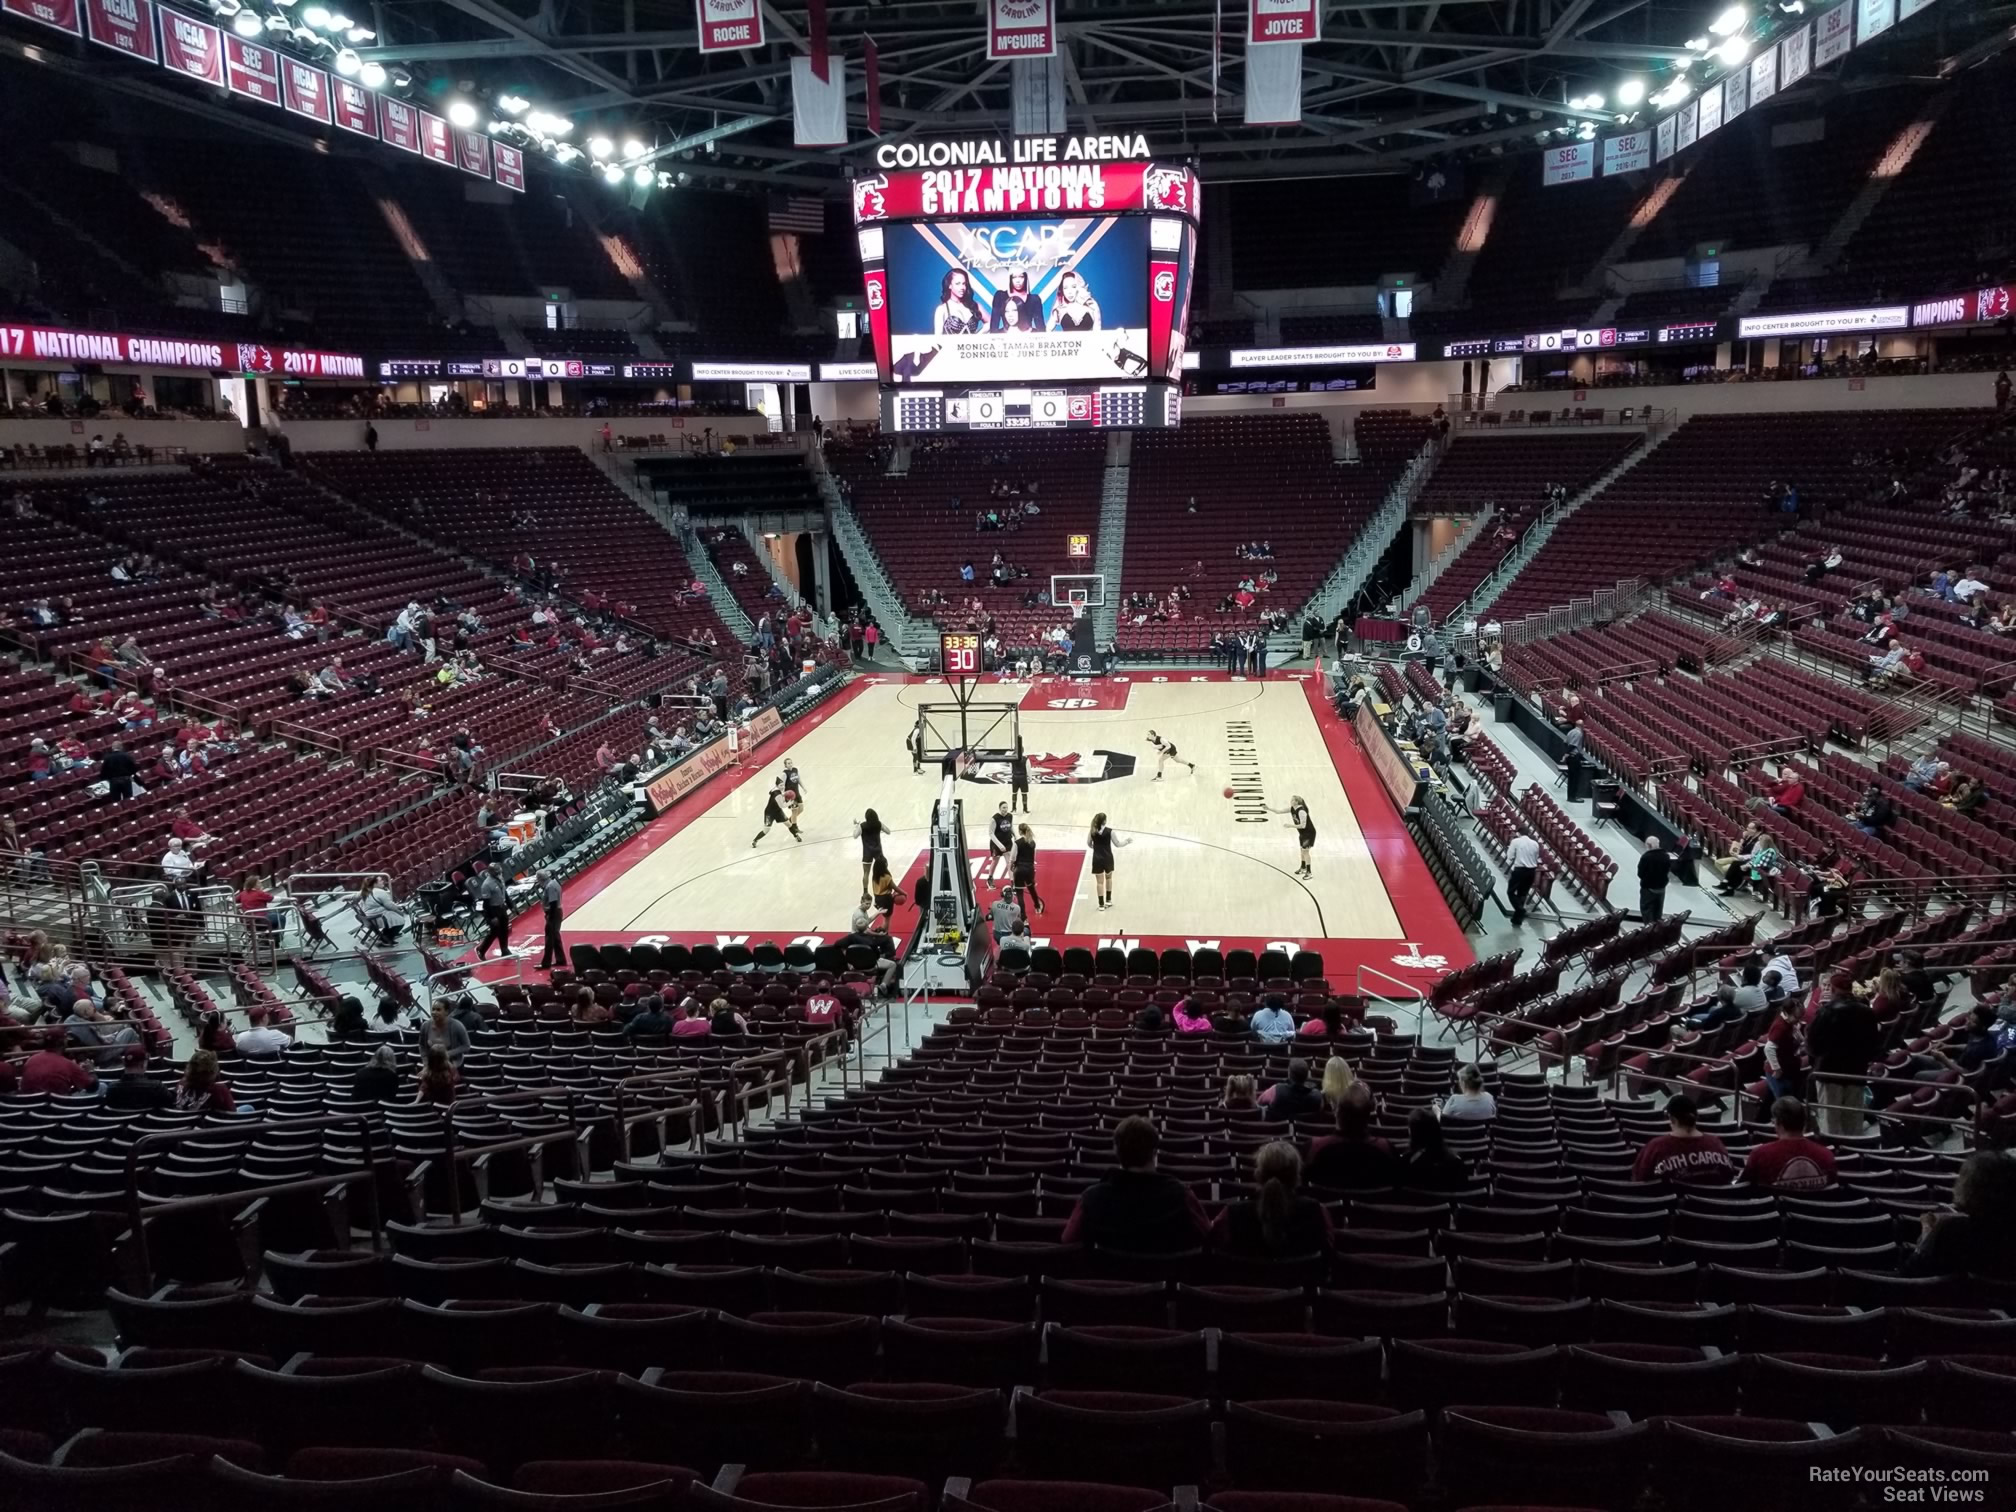 Seat View for Colonial Life Arena Section 118, Row 25